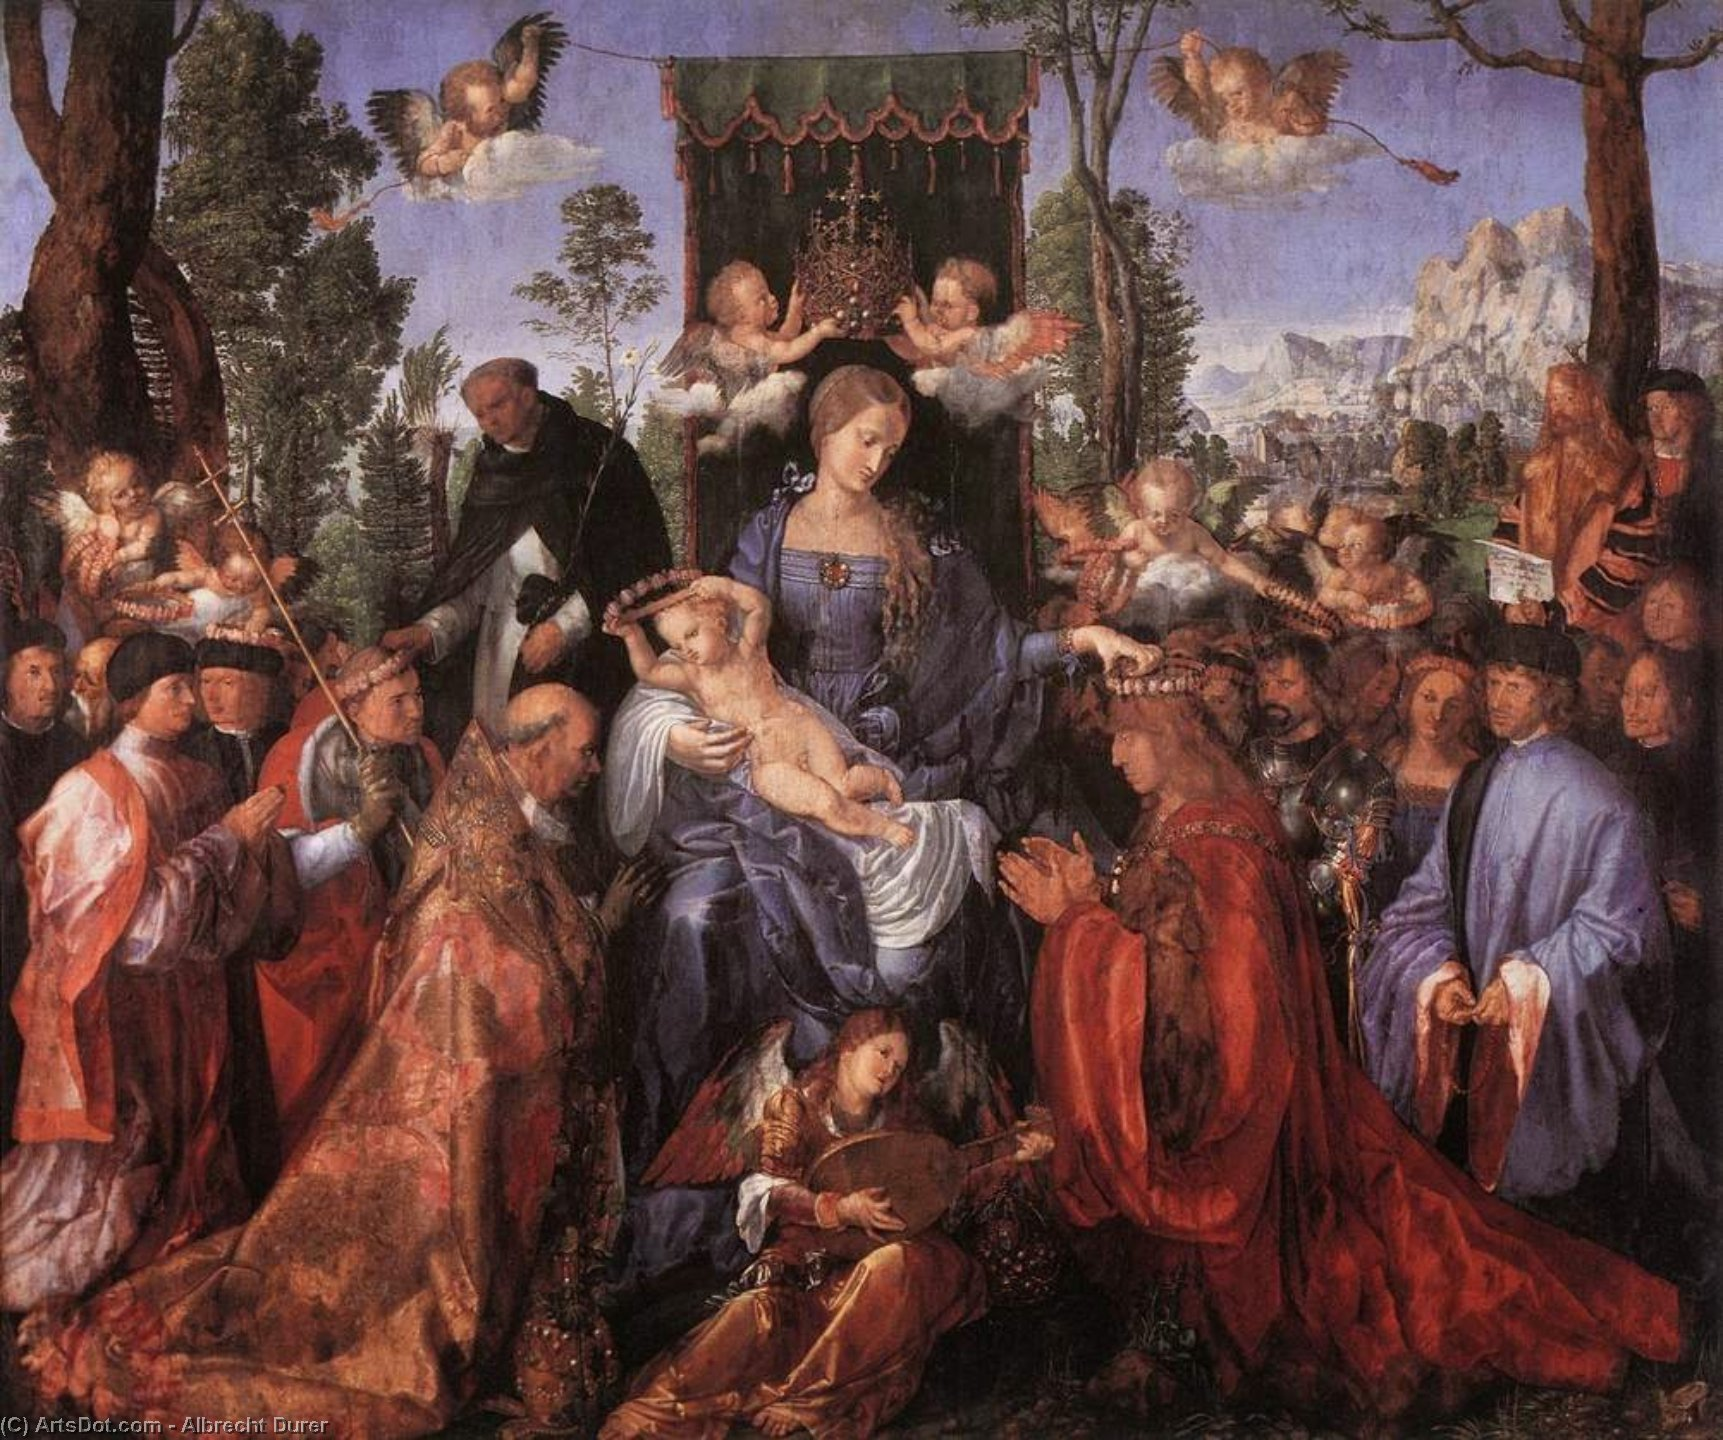 Wikioo.org - The Encyclopedia of Fine Arts - Painting, Artwork by Albrecht Durer - The Altarpiece of the Rose Garlands